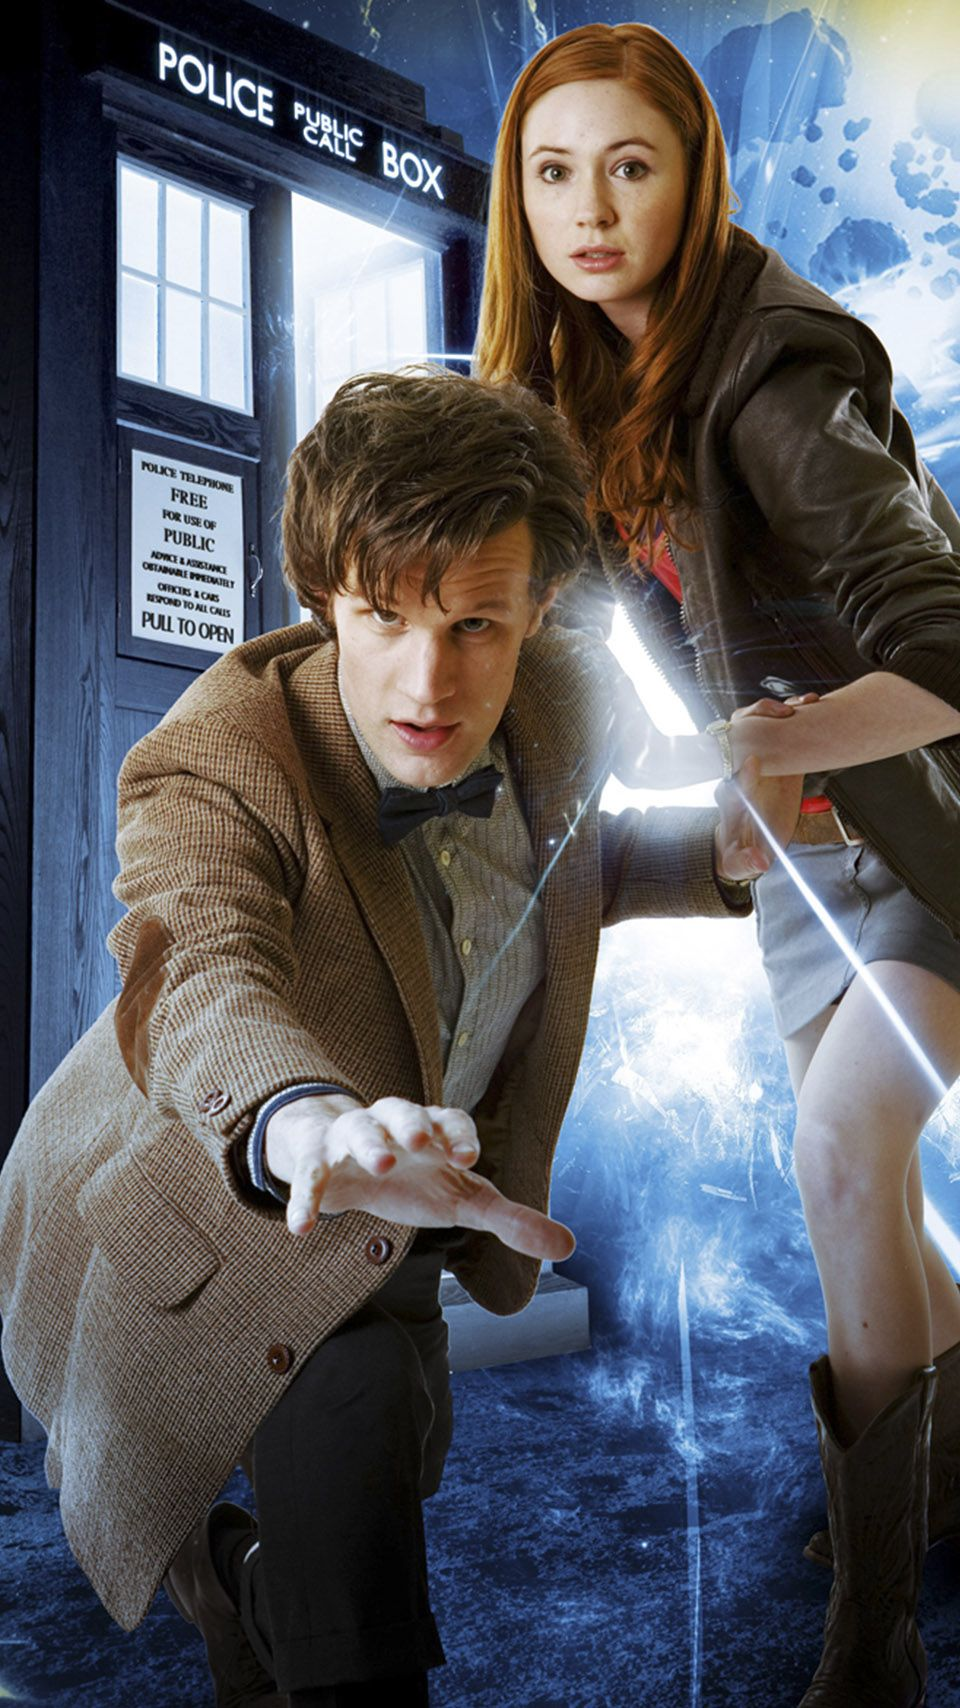 Shared Via The Best Doctorwho App For Iphone Whoniverseapp Http Ysoftware Ru Doctor Who Doctor Who Wallpaper Doctor